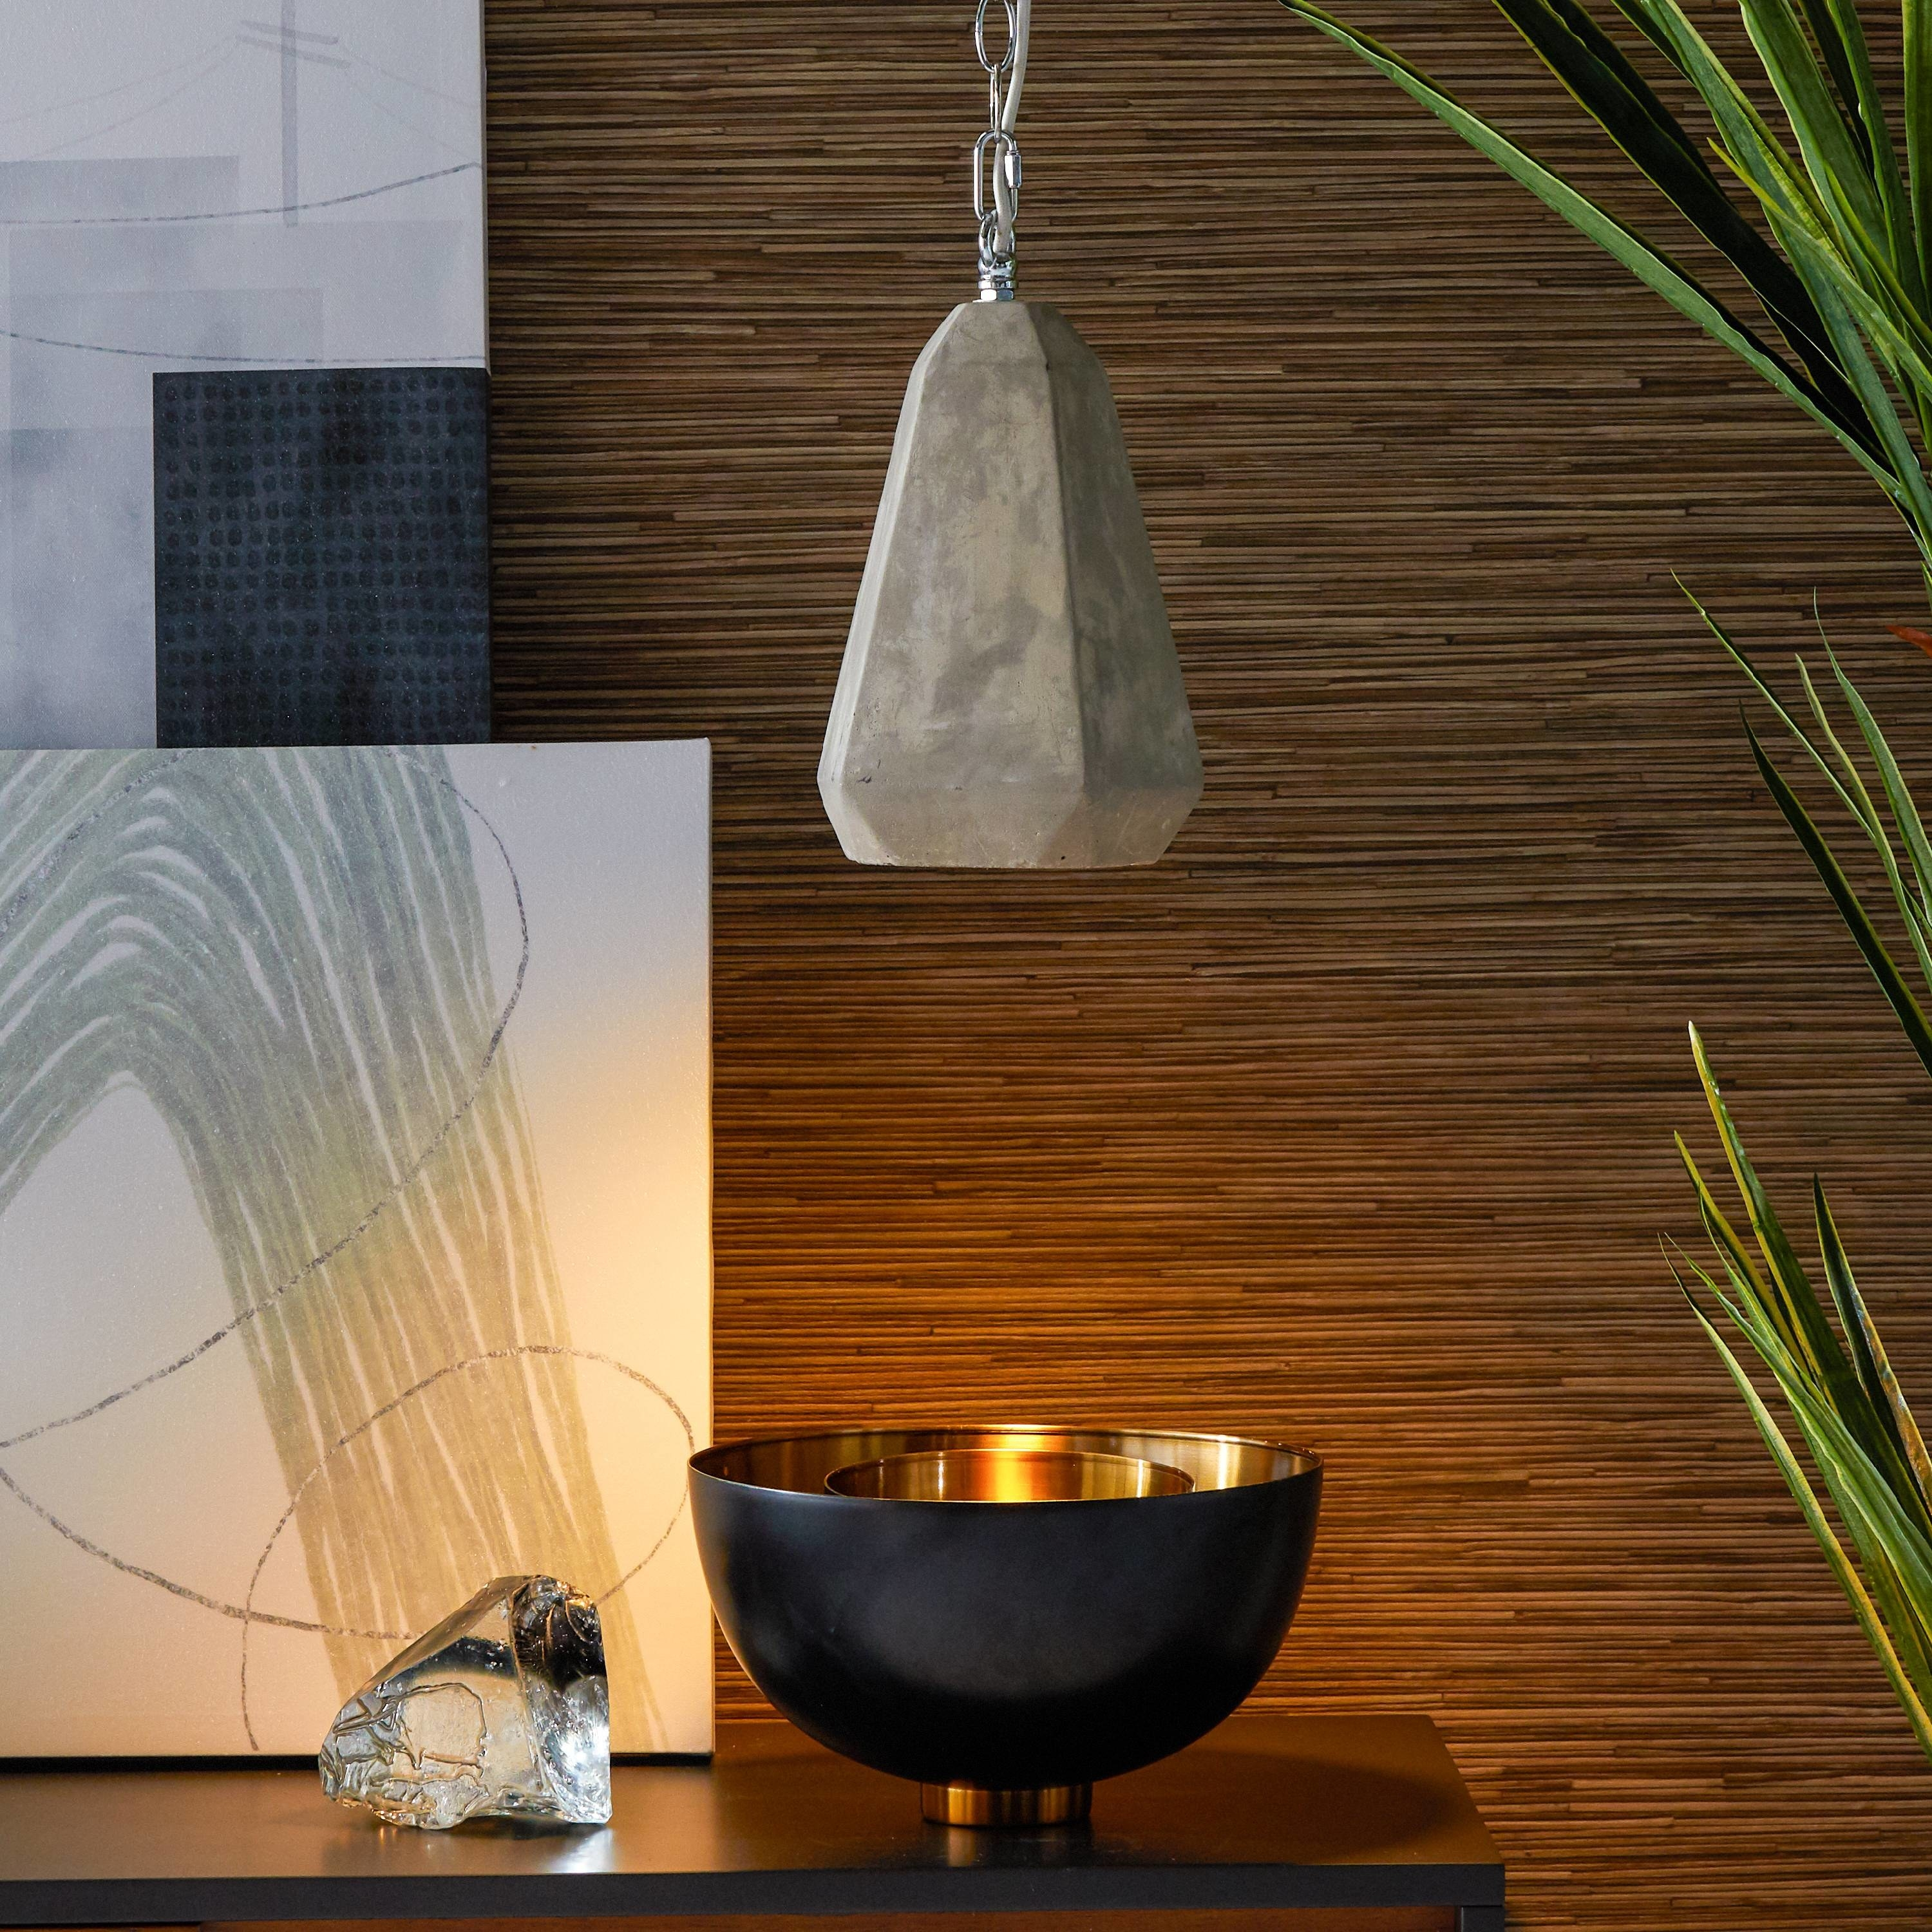 The lamp hanging above a bronze bowl